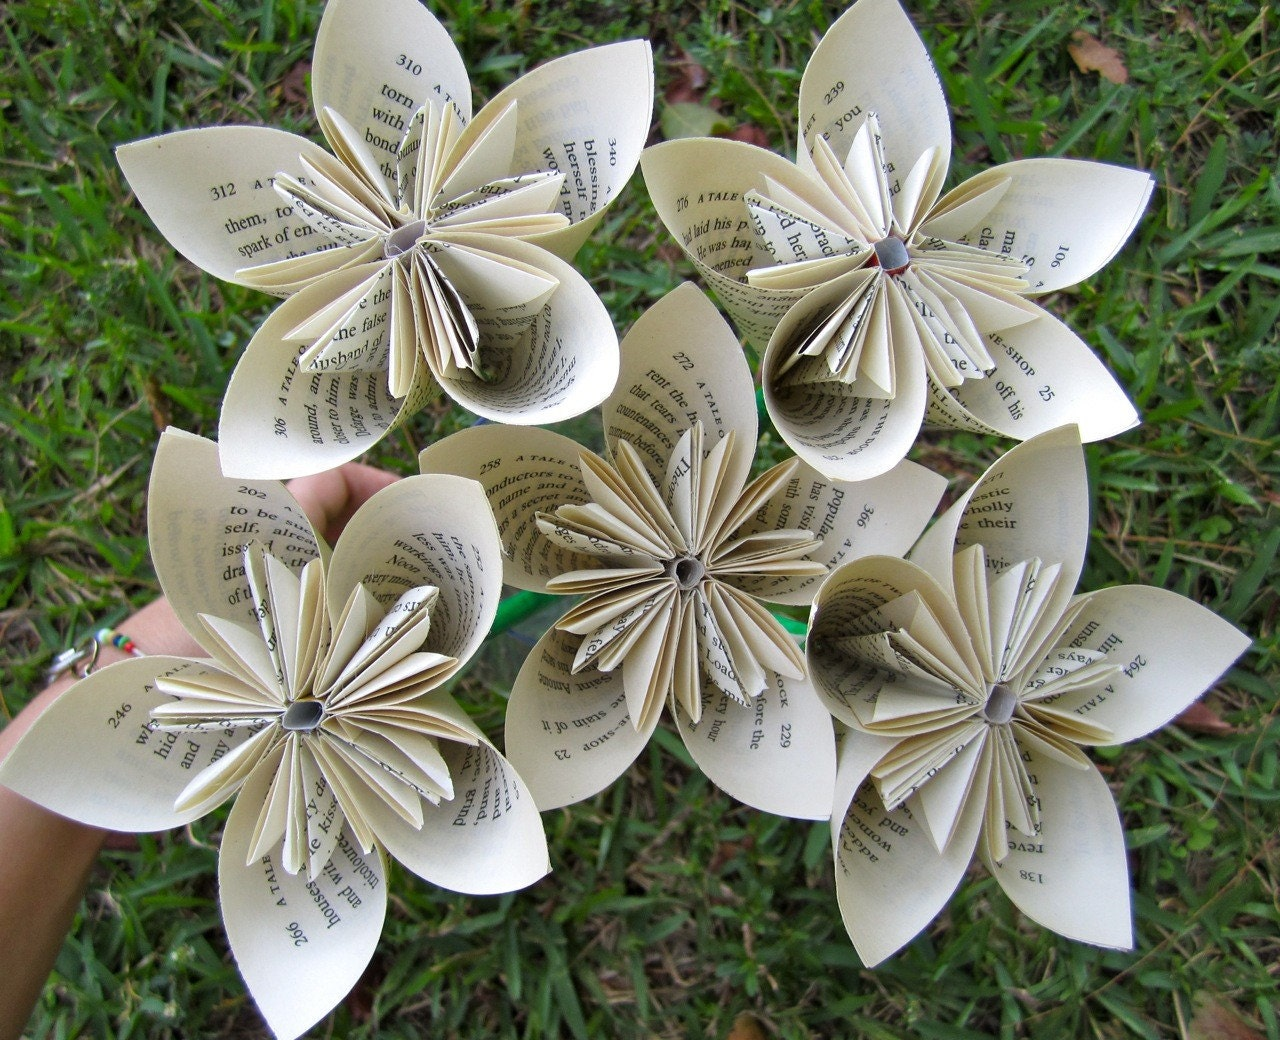 5 Recycled Book Paper Flowers - A Tale of Two Cities - Charles Dickens